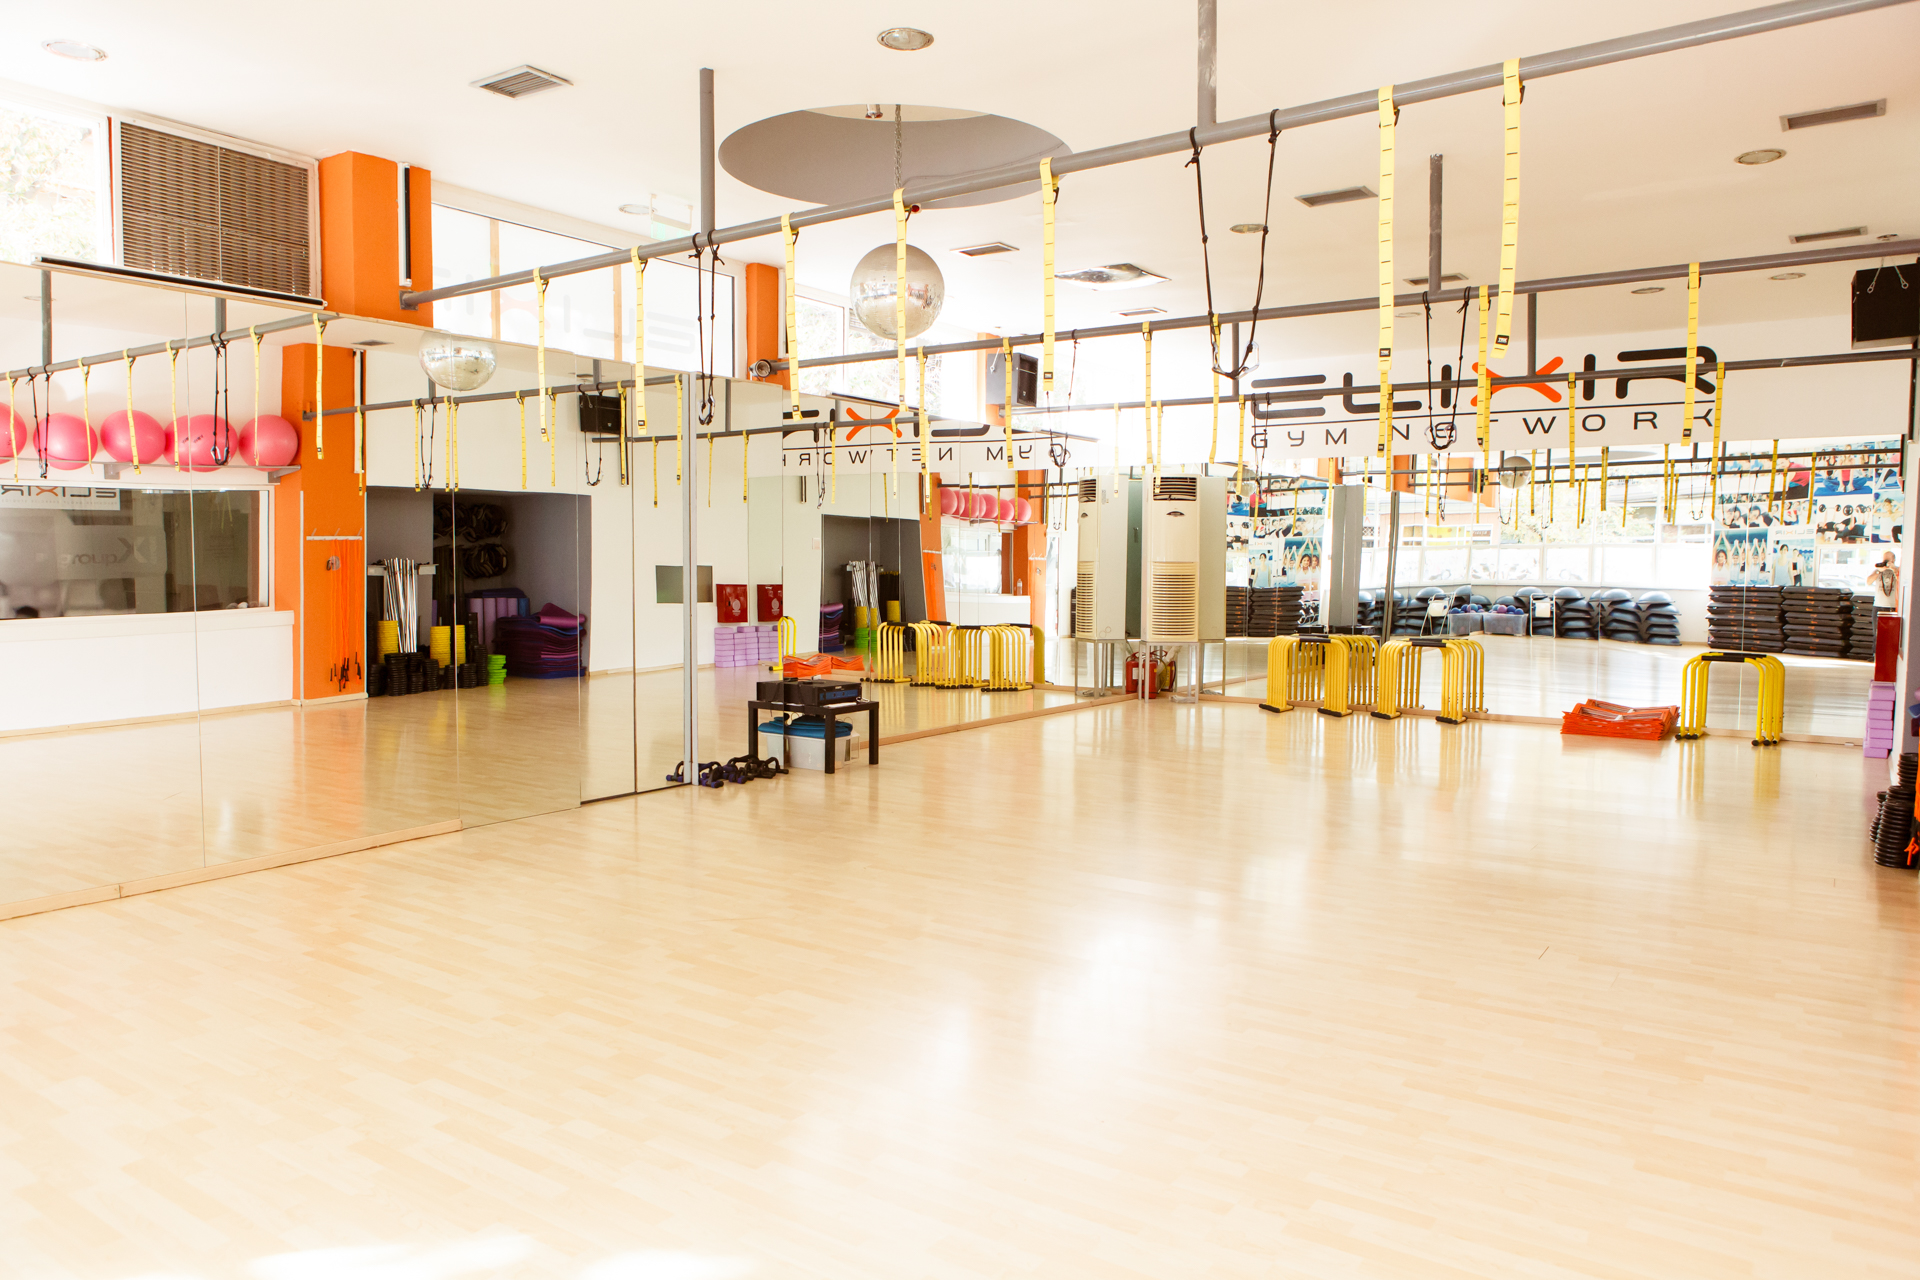 Laskaratou Elixir Gym & Pilates Studio Schedule